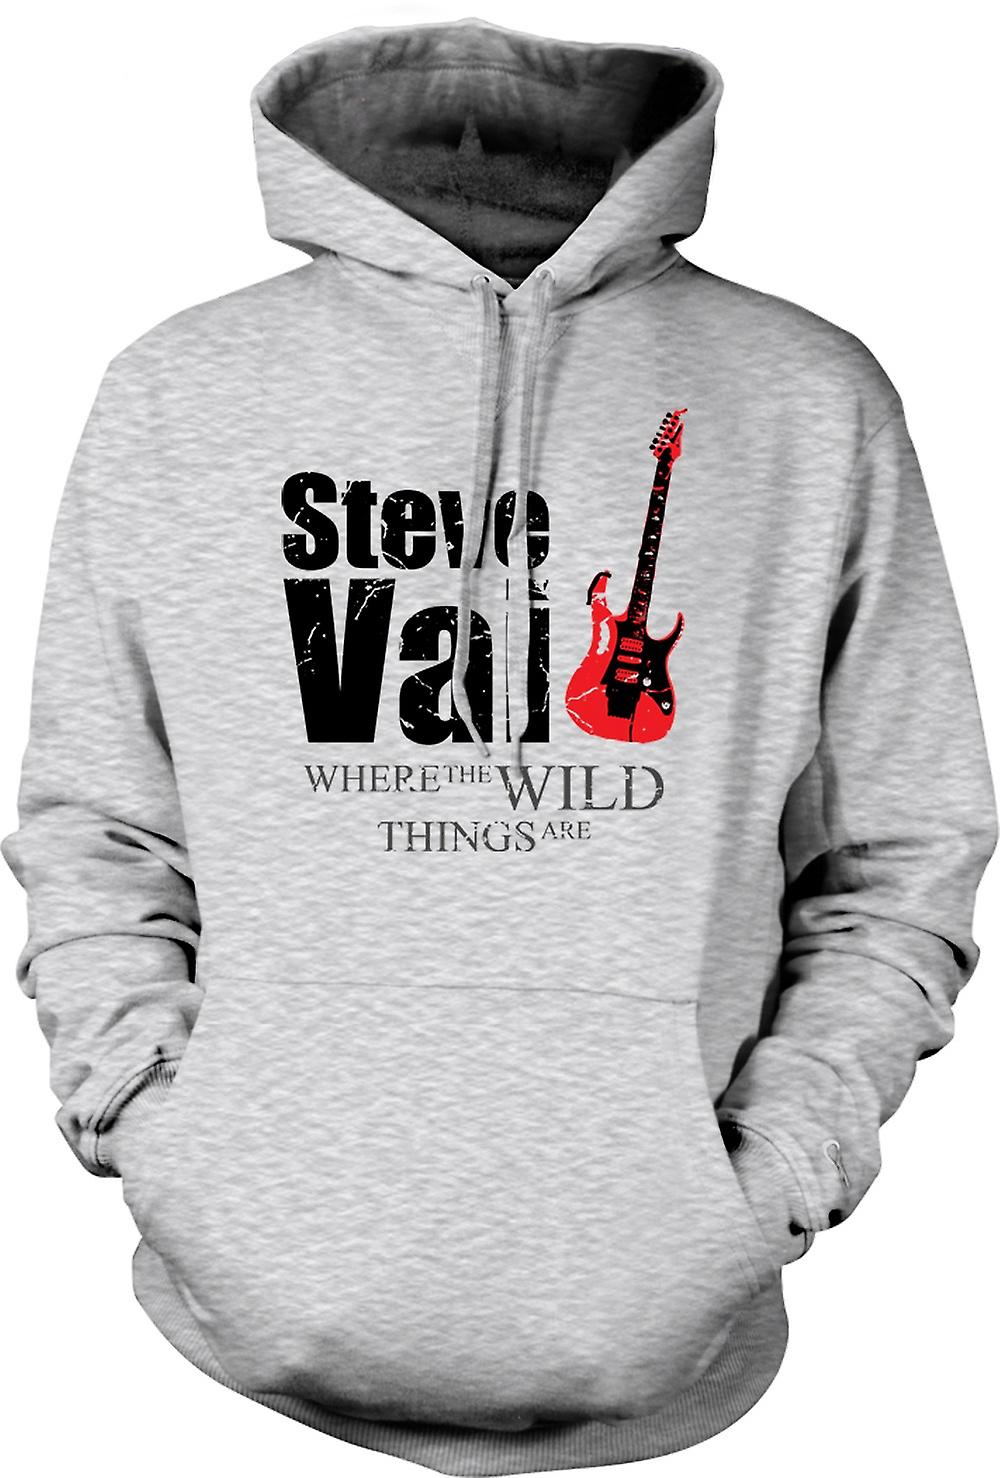 Mens hettegenser - Steve Vai Wild Things - gitar legenden